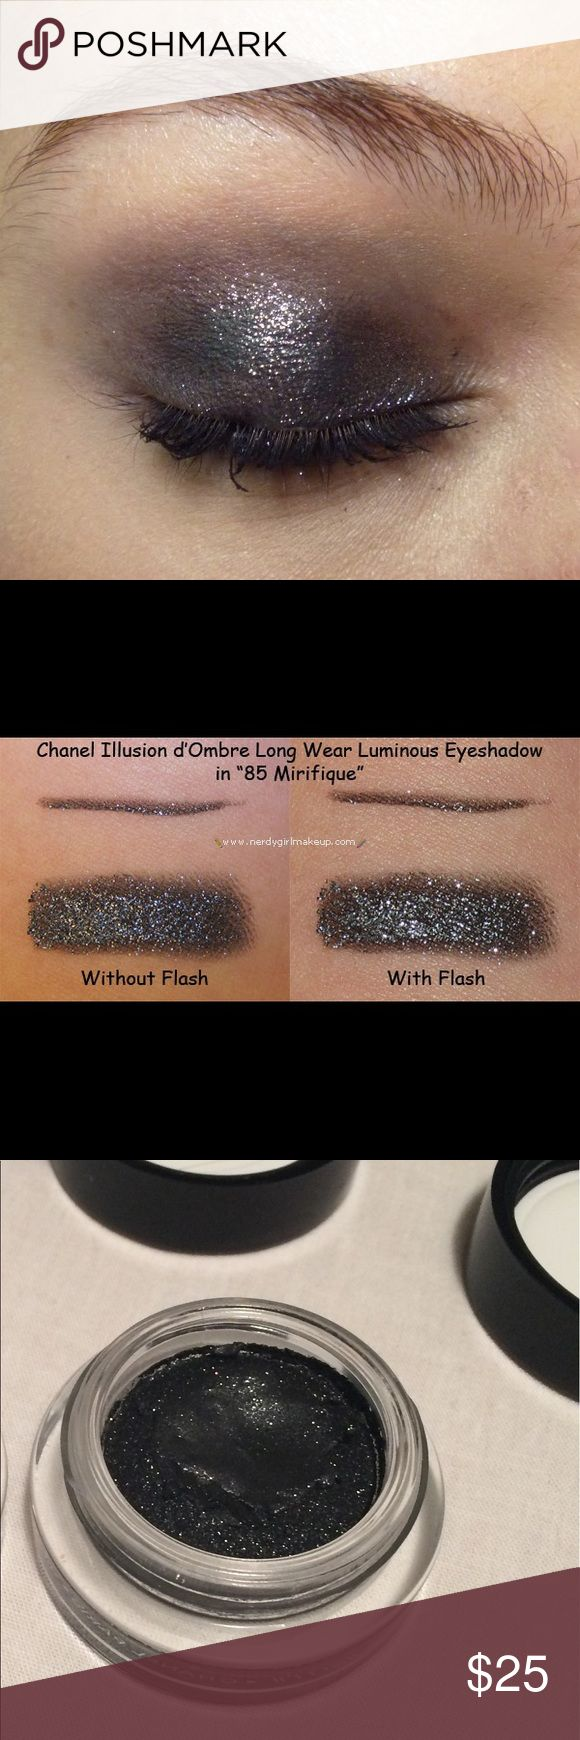 CHANEL Illusion d'Ombre Eyeshadow 85 Mirifique This listing is for JUST Mirifique. Beautiful smudged and for a smokey eye. Used 3-4x. Bundle and save! Also sellif Fantasme. NO TRADES CHANEL Makeup Eyeshadow